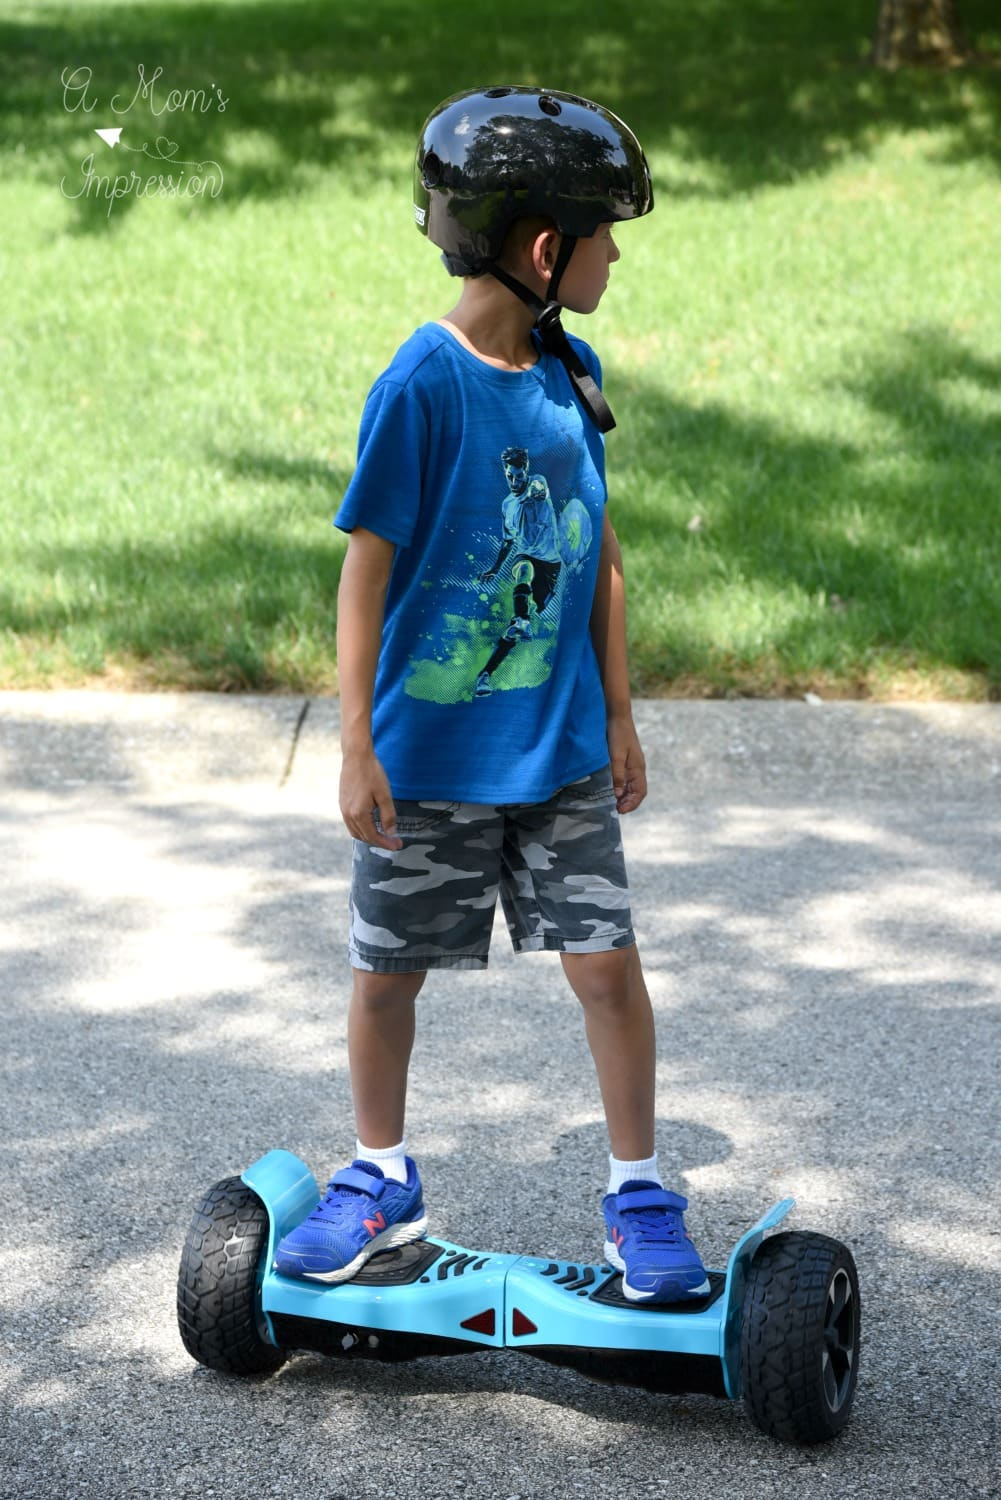 Boy Riding Blue hoverboard